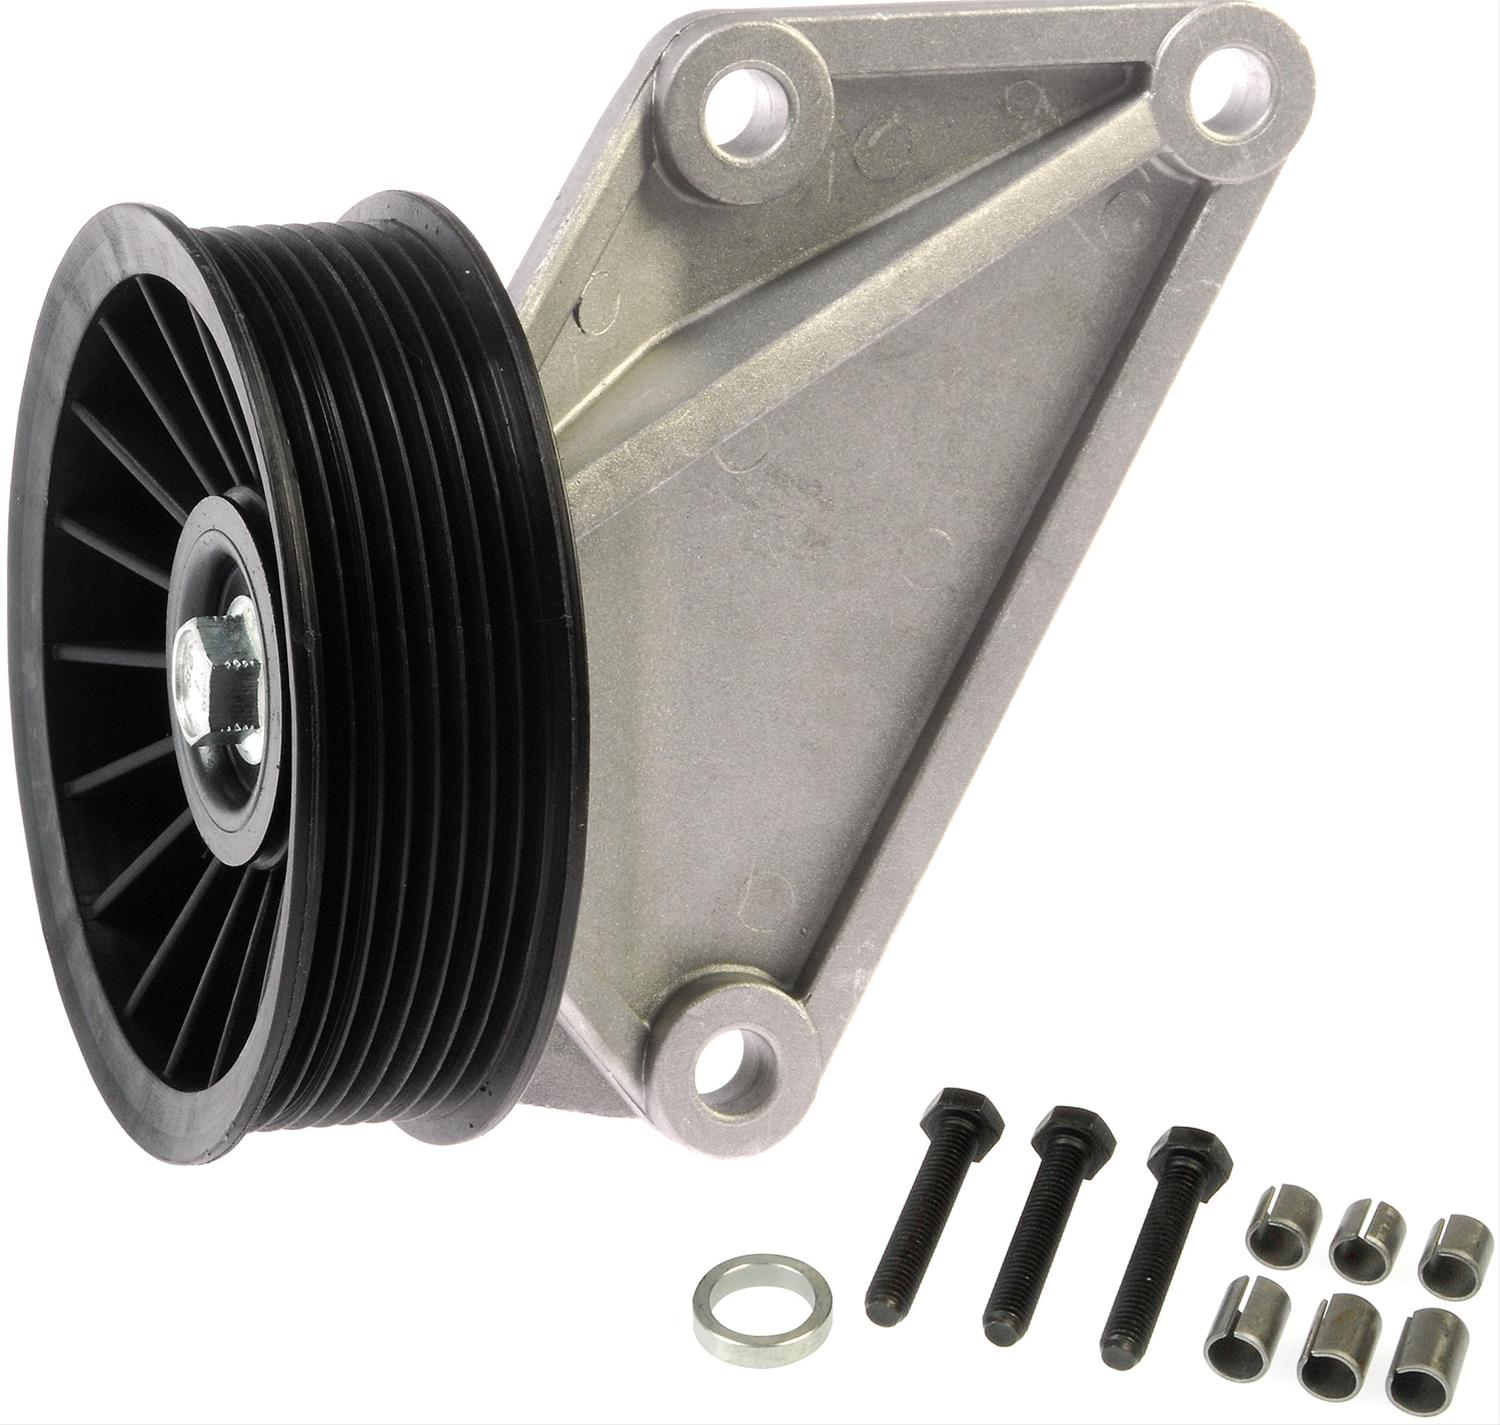 Dorman Air Conditioner Bypass Brackets  Free Shipping On Orders Over  At Summit Racing